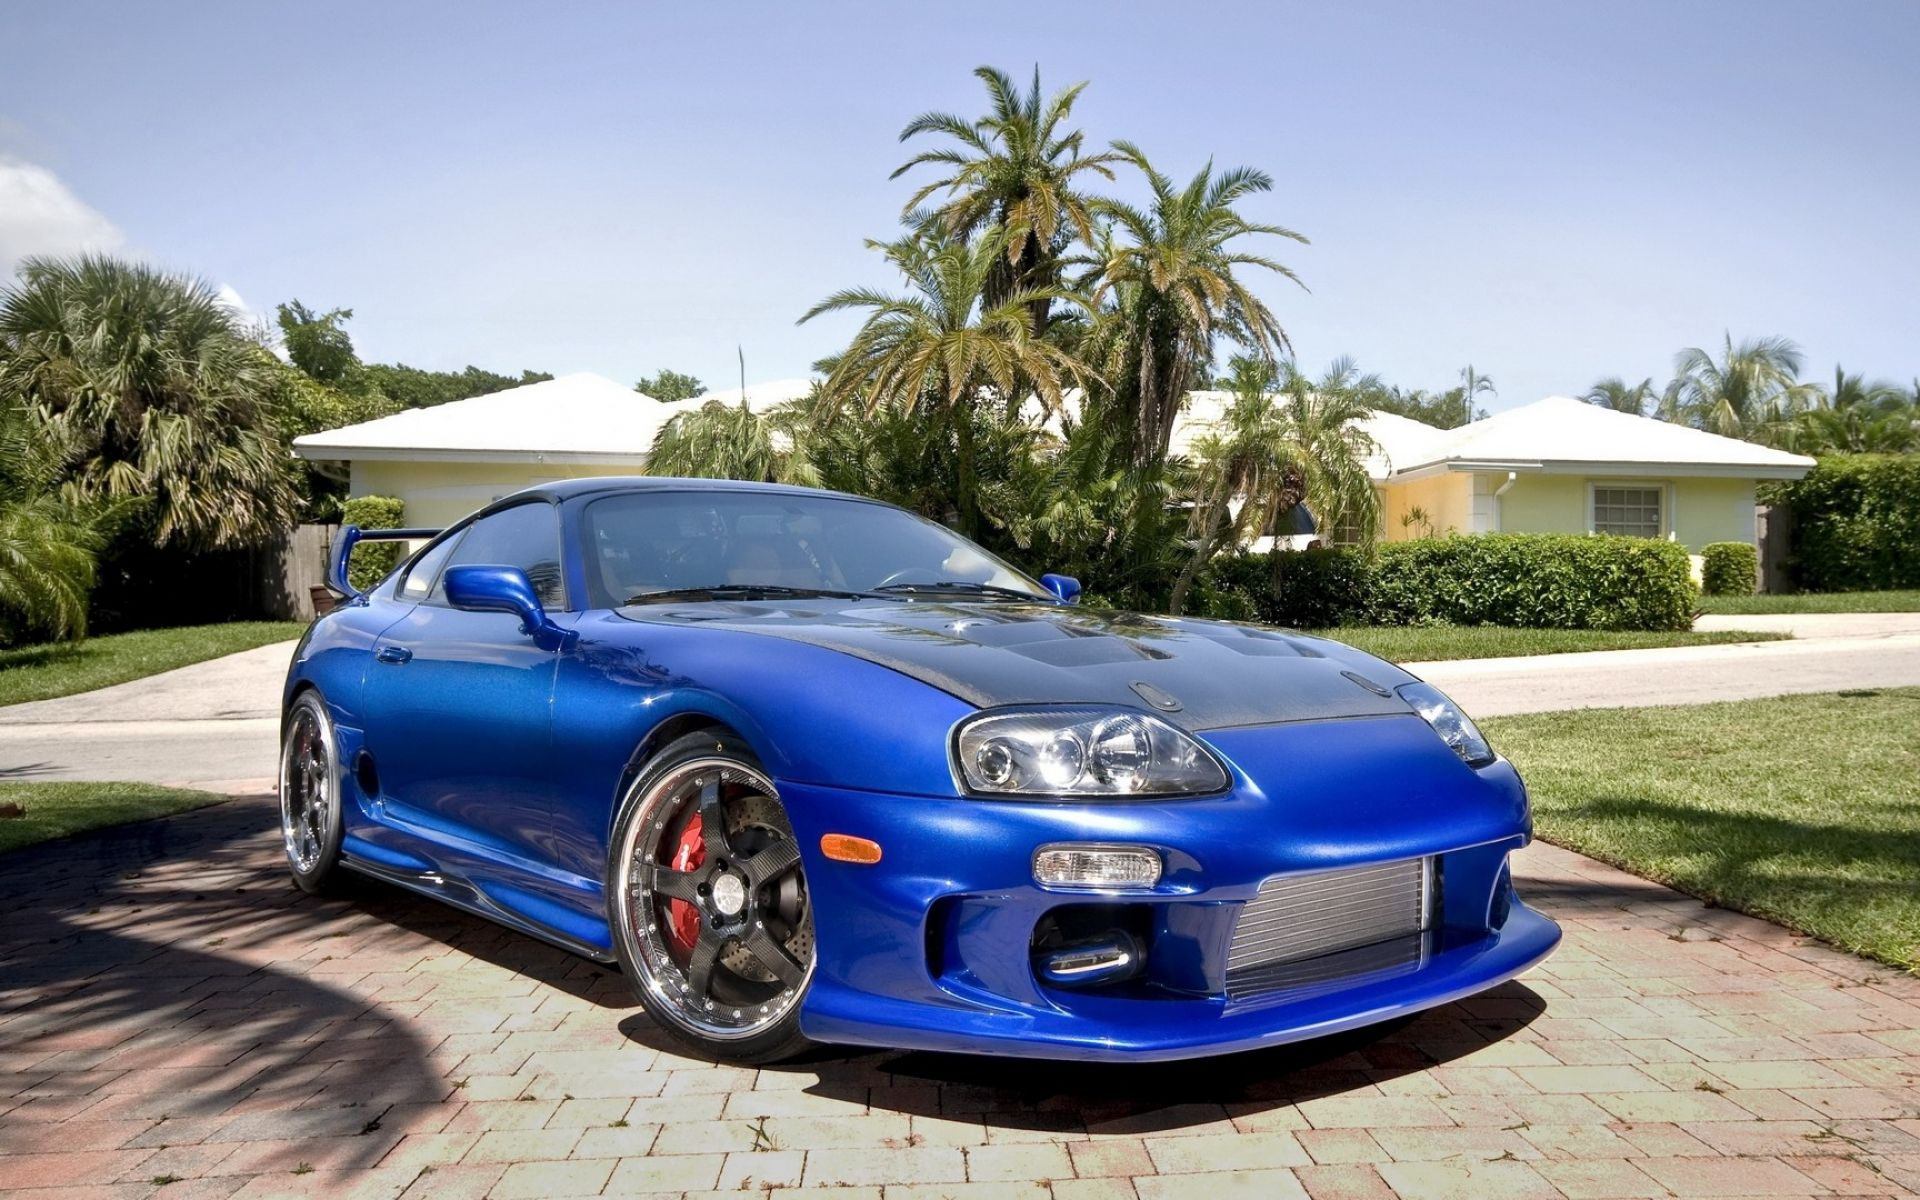 supra automobiles supra mkiv Wallpaper download for iPhone 5 2015 1920x1200